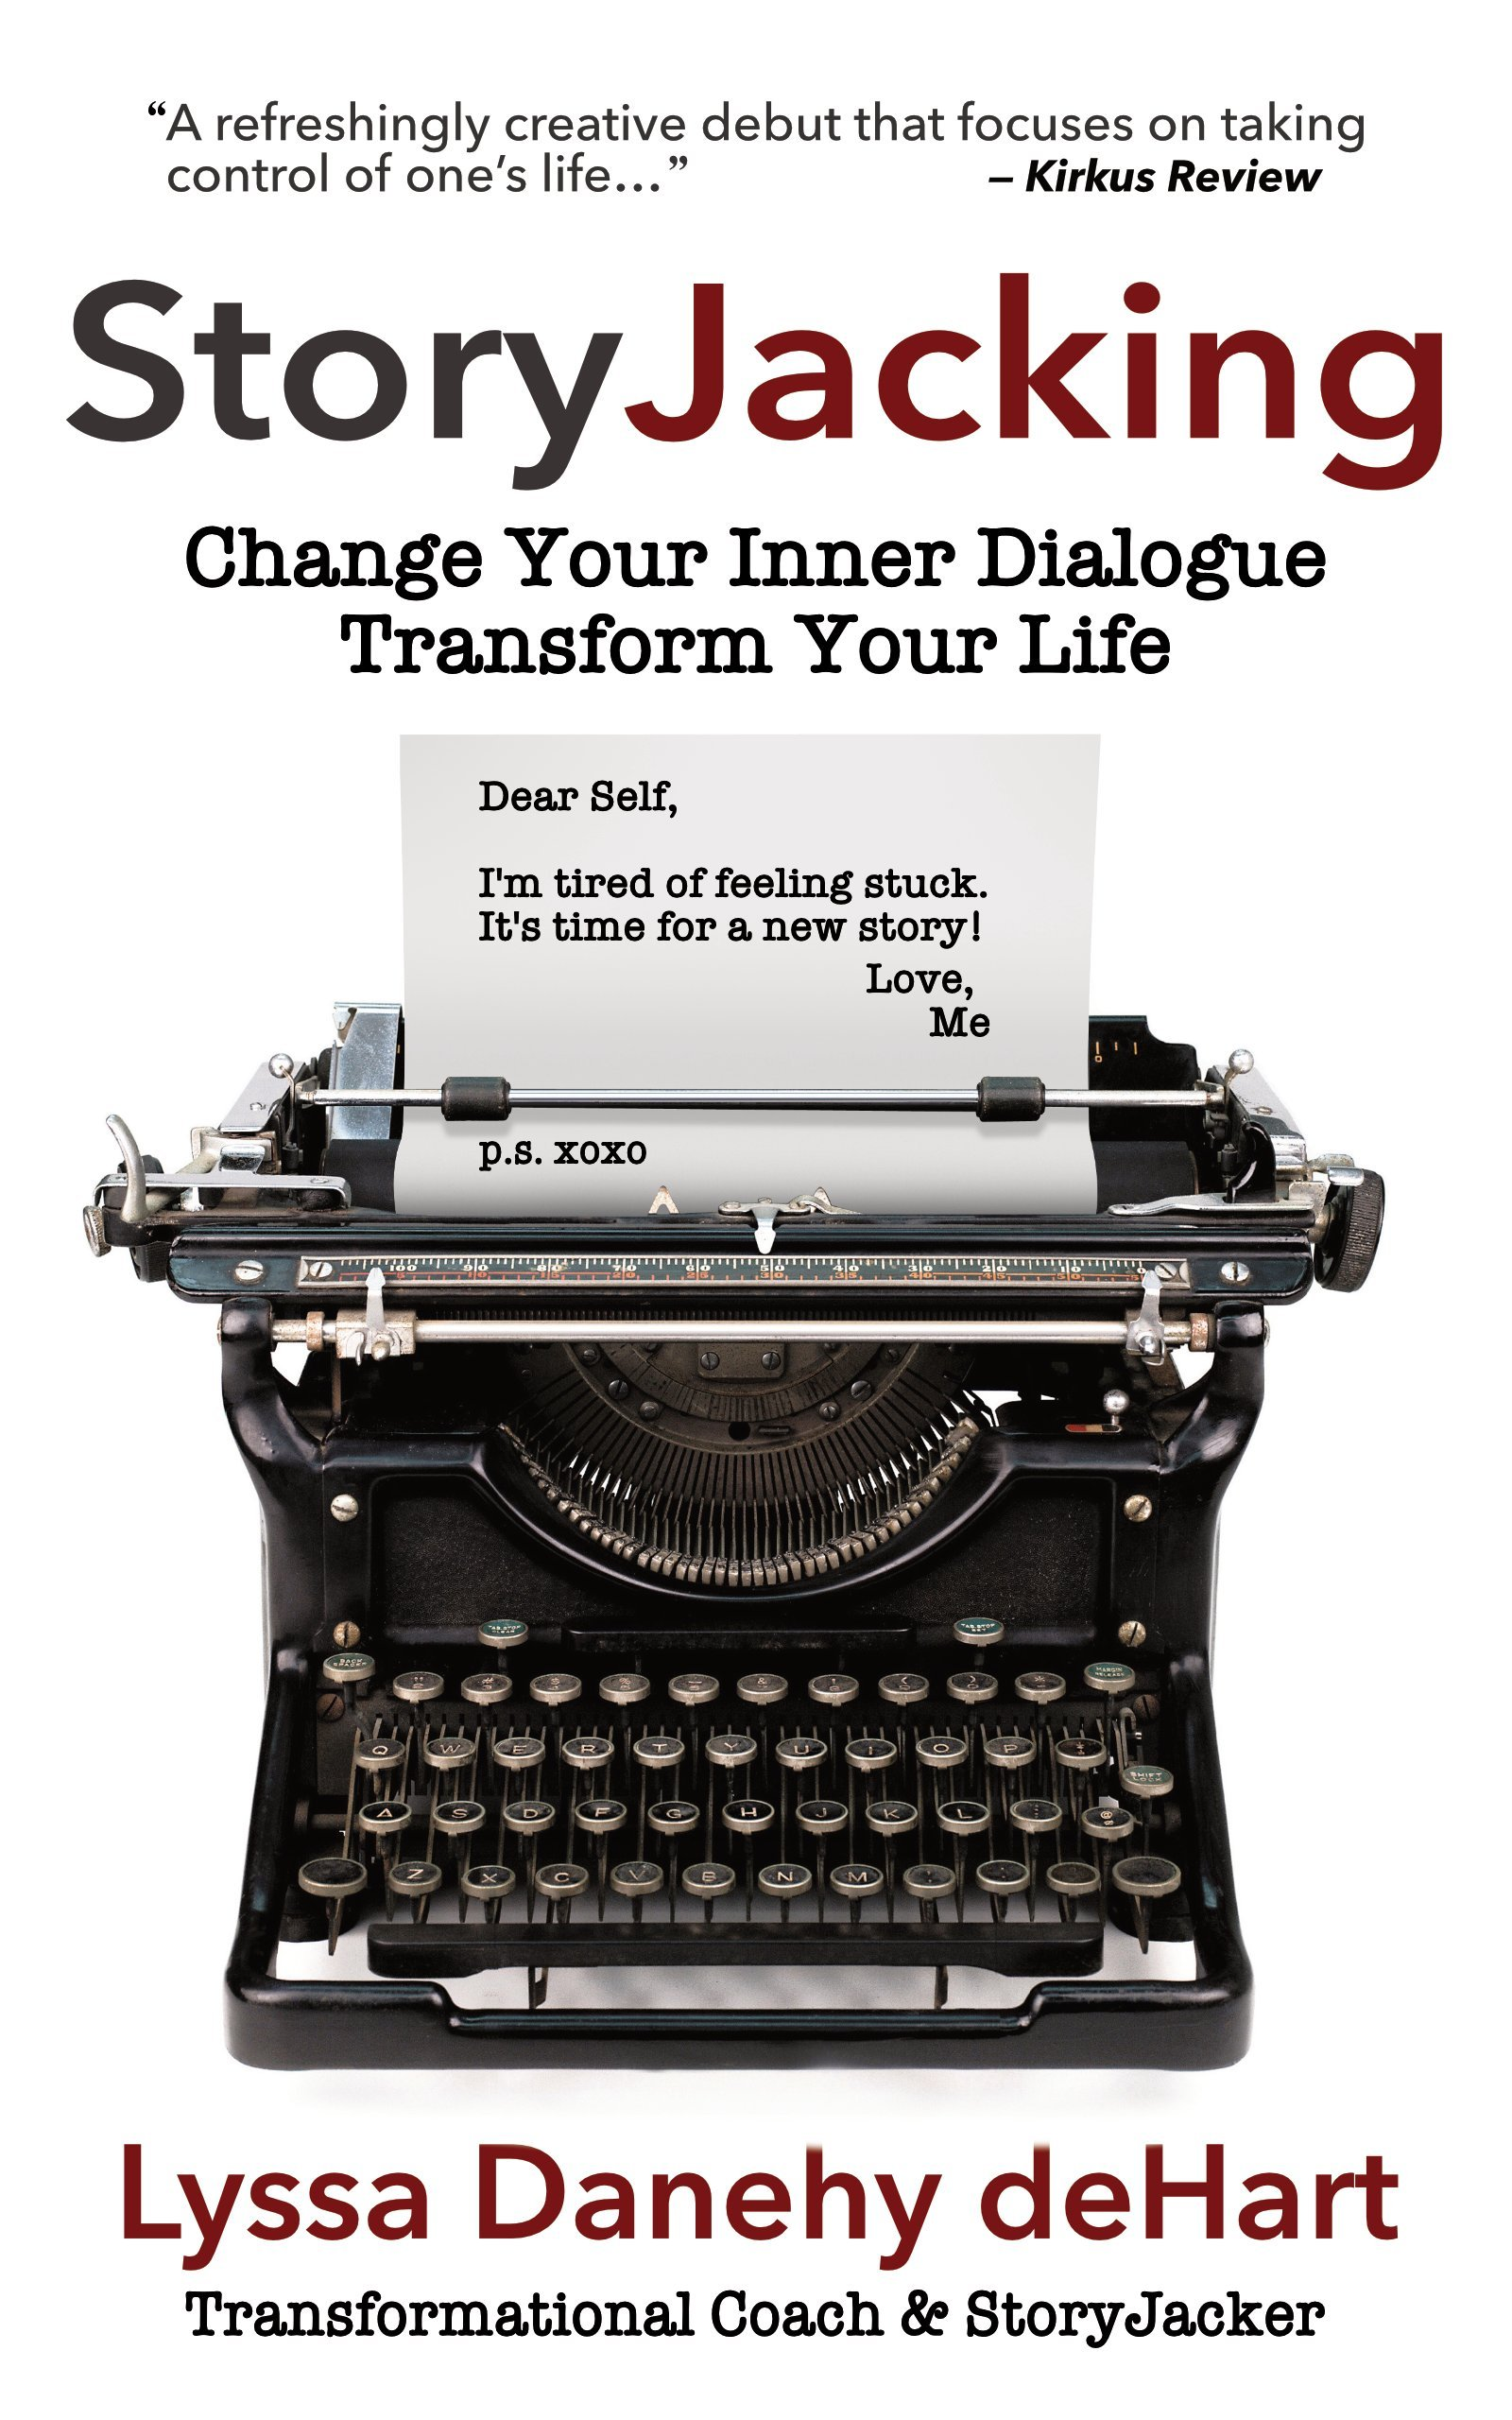 Image OfStoryJacking: Change Your Inner Dialogue, Transform Your Life